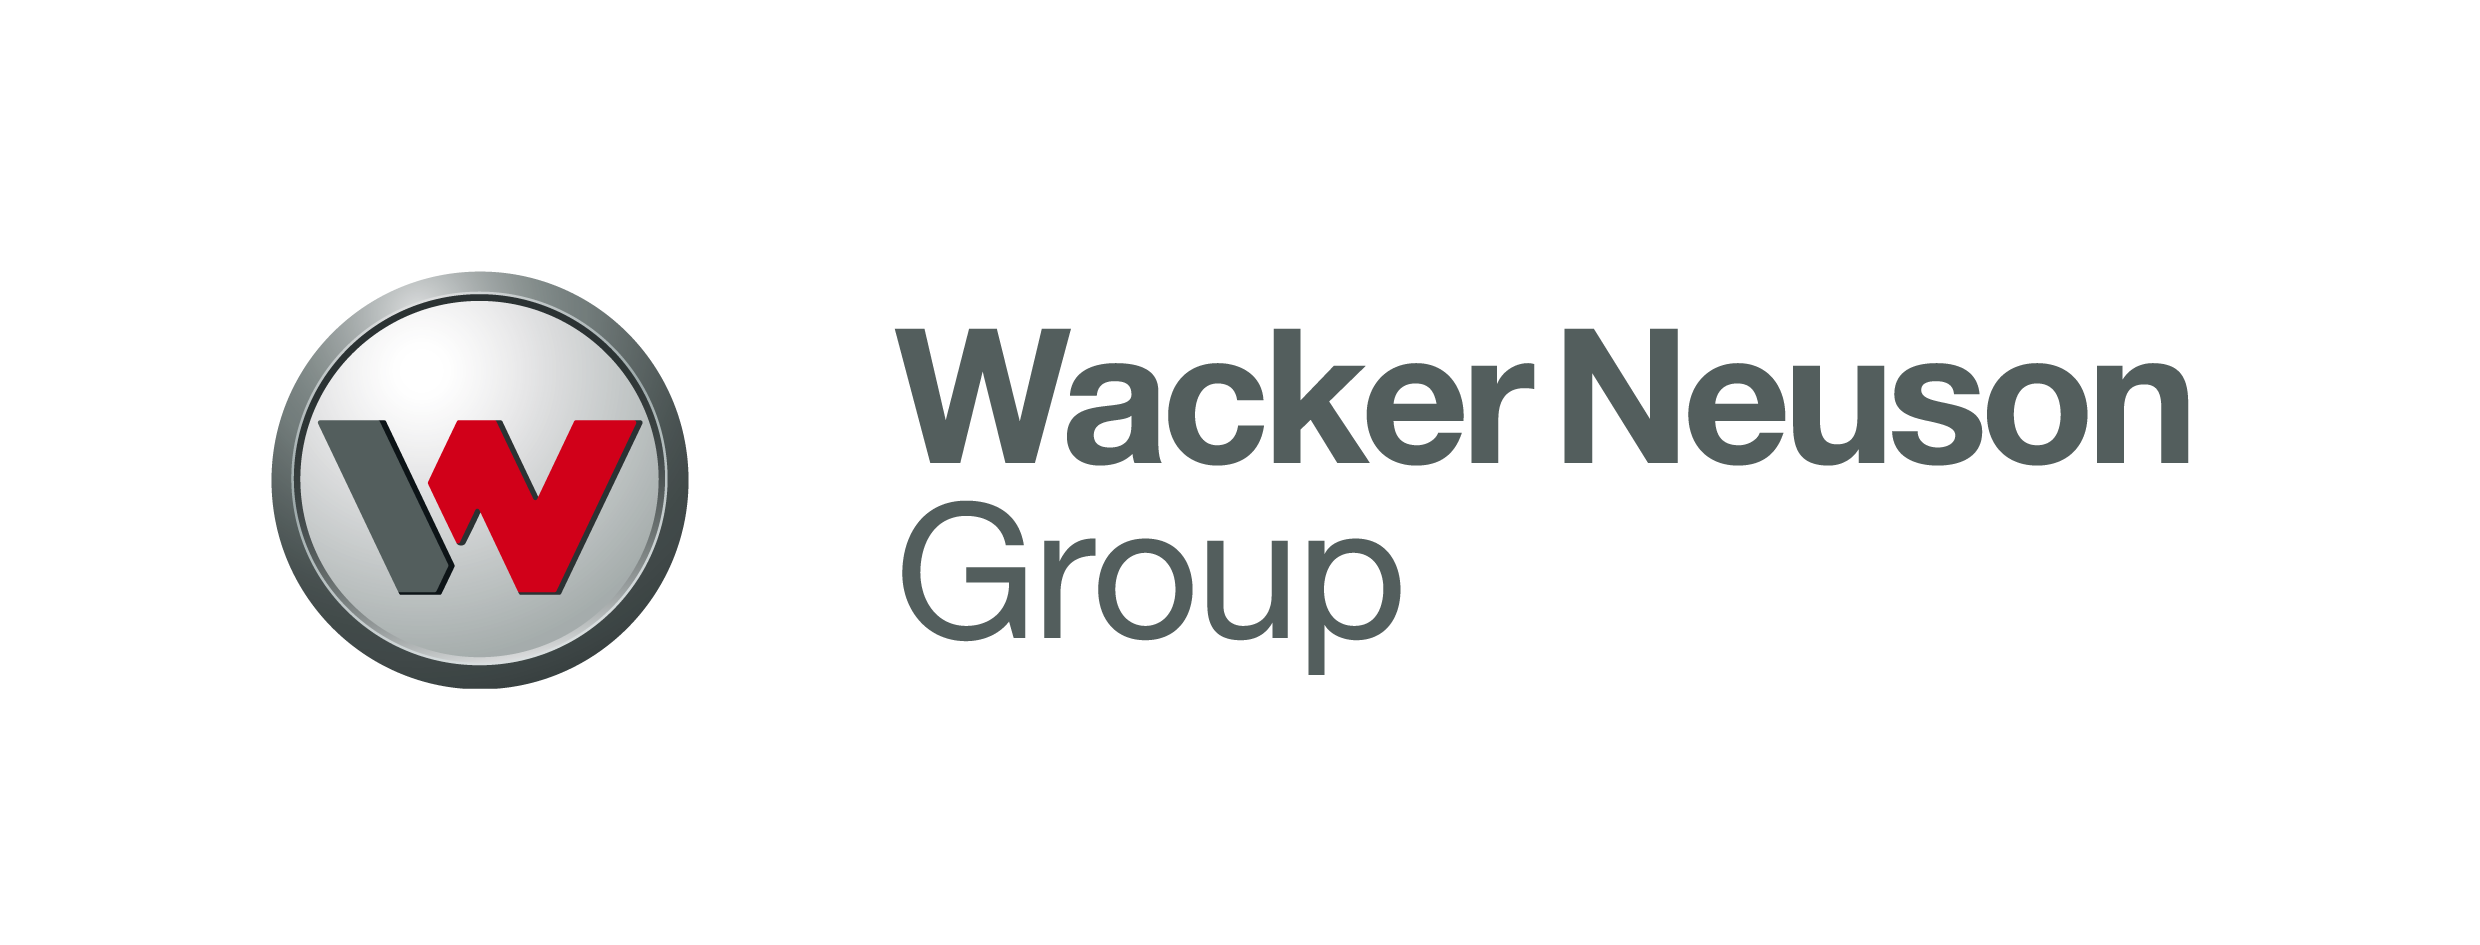 File:Wacker Neuson Group Logo.png.